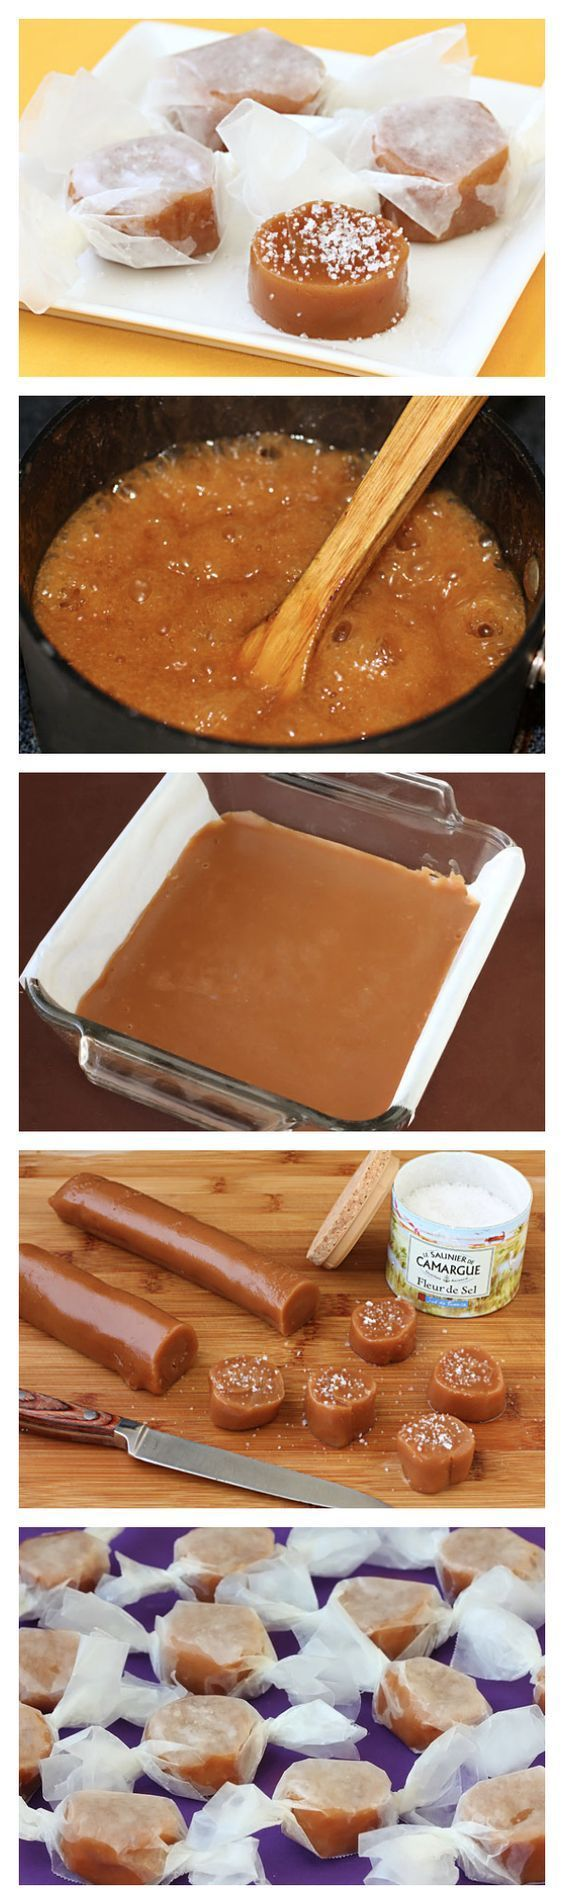 Sweet, simple and oh-so-delicious homemade treats!